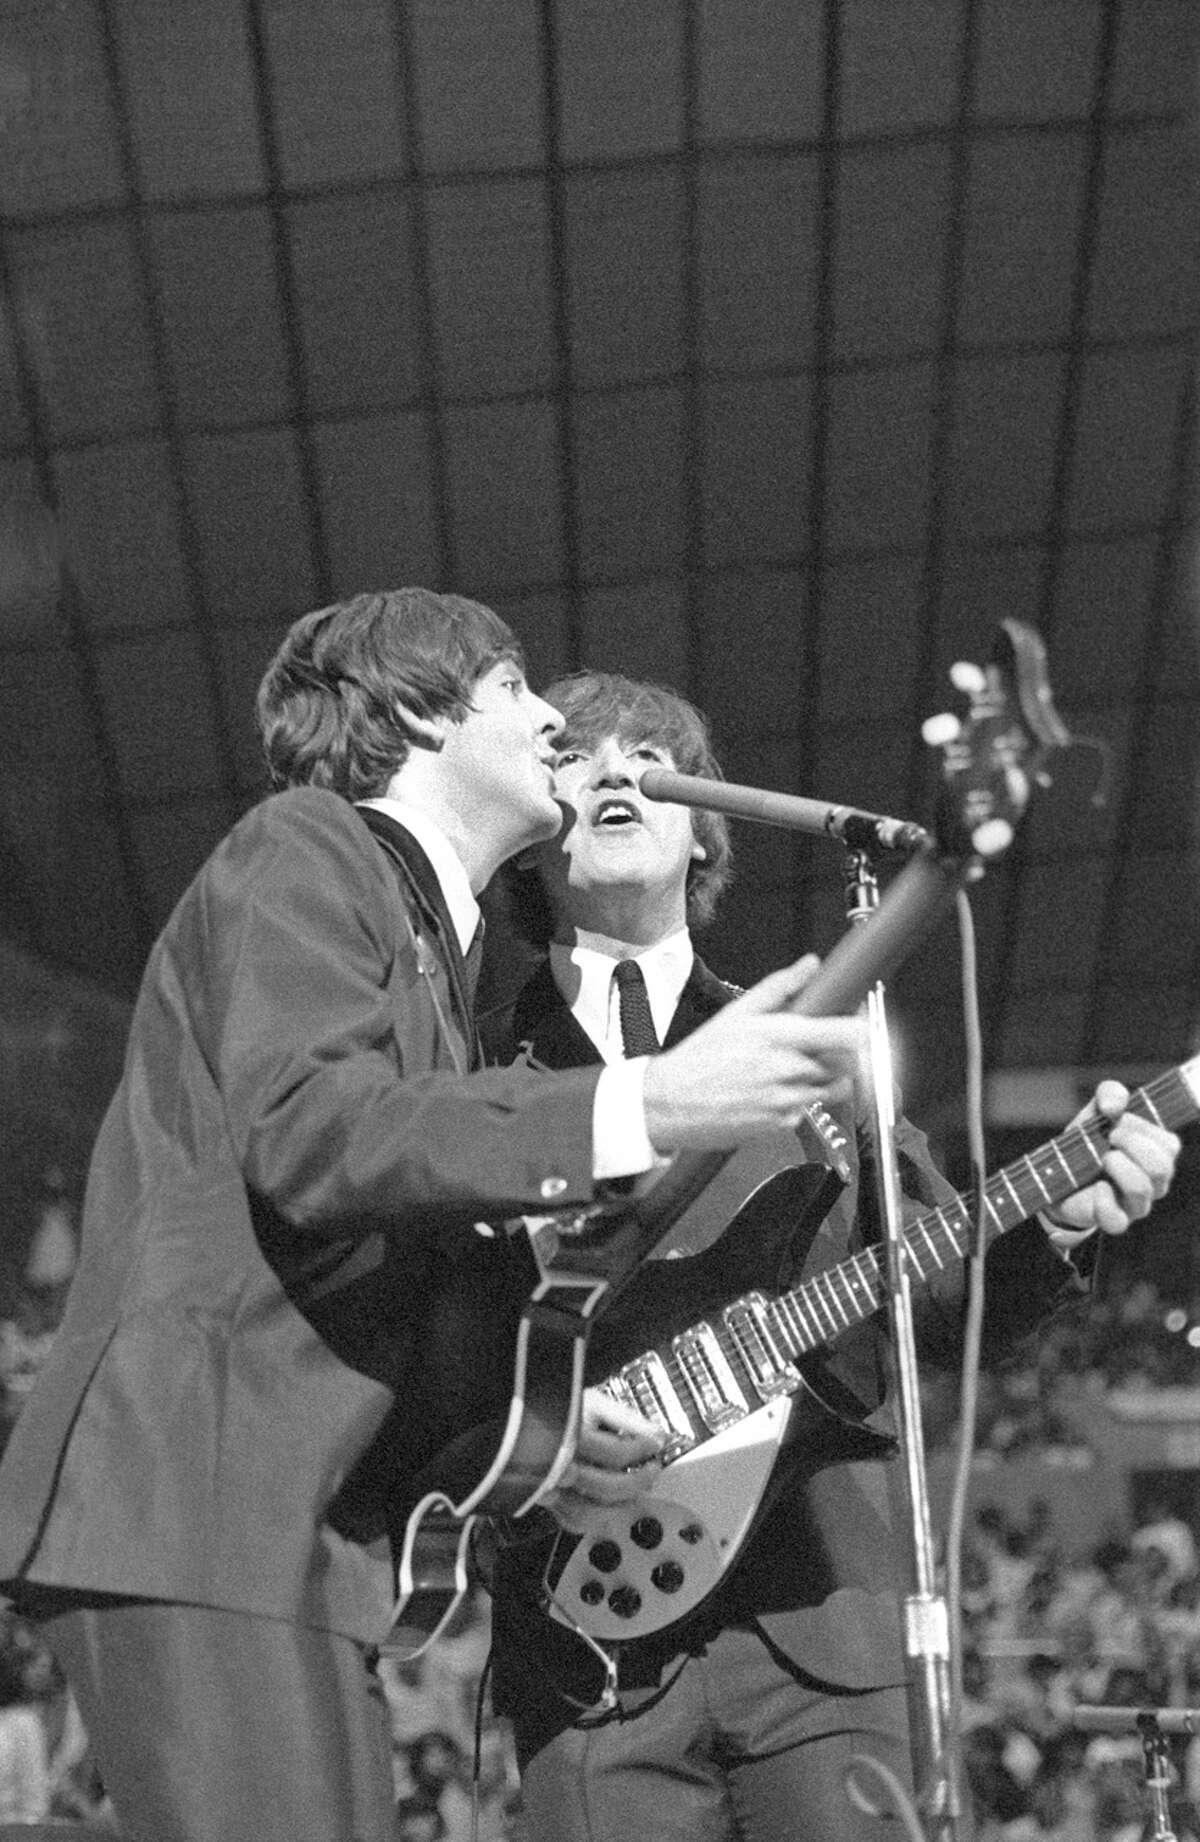 The Beatles play their first concert in Seattle, August 21, 1964 at the Seattle Center Coliseum. This image is part of a MOHAI pop-up display commemmorating the 50th anniversary of the Beatles' first Northwest visit.